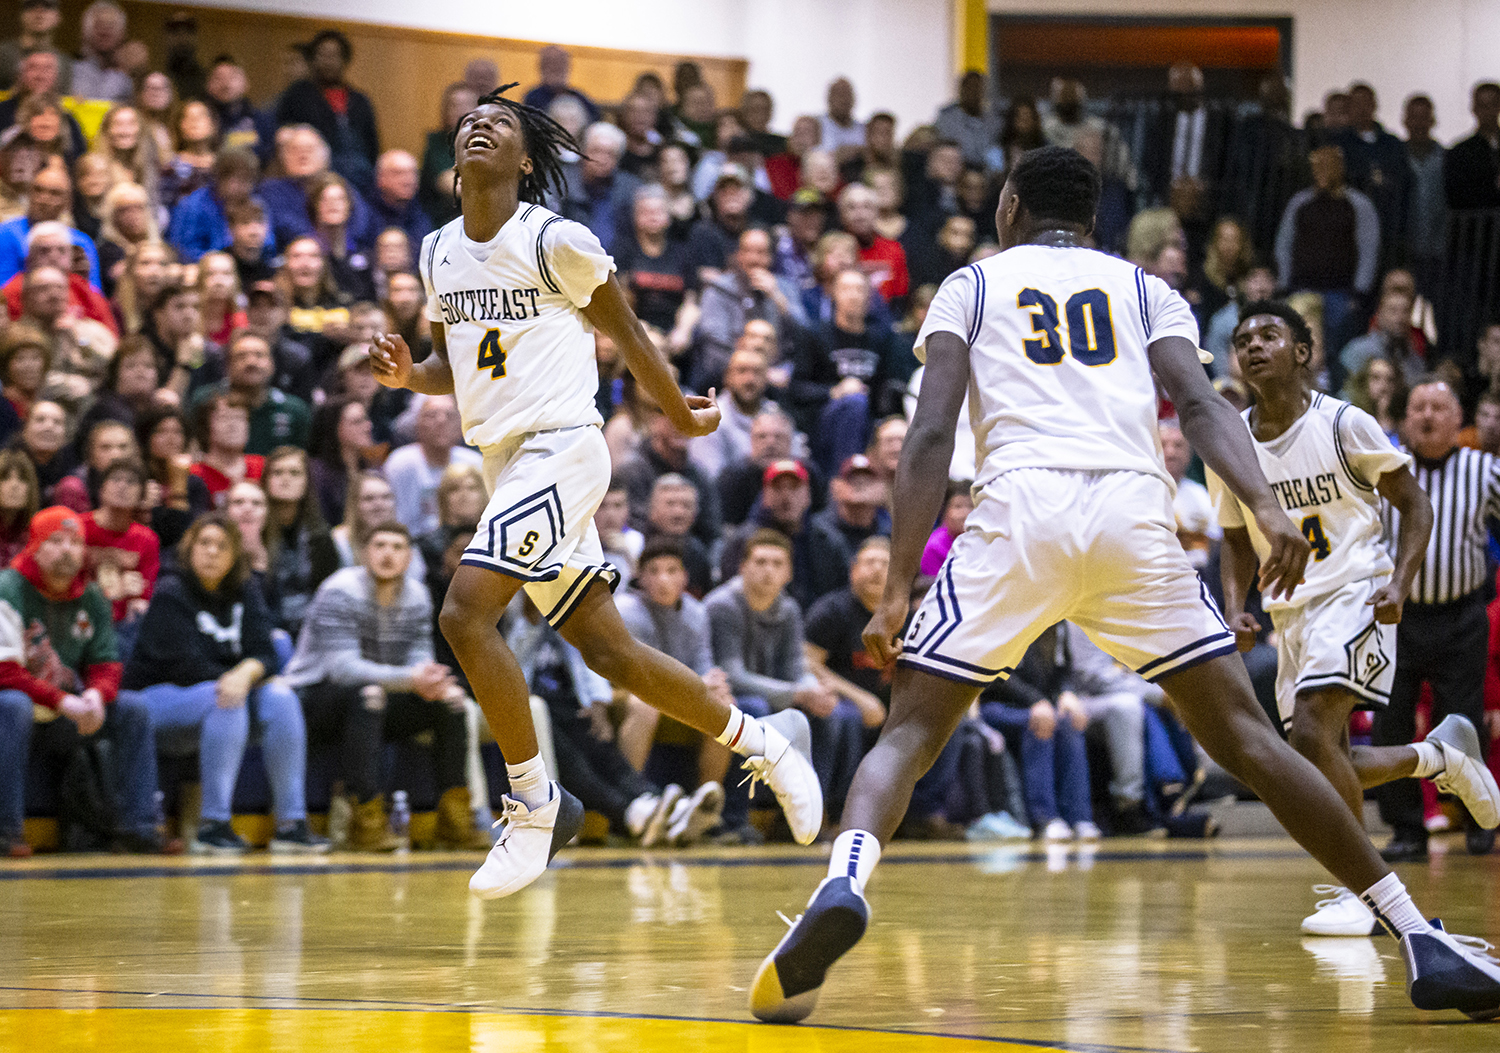 Southeast's Terrion Murdix (4) is all smiles as he runs off the court with his teammates with the Spartans heading into halftime with a commanding lead against Lincoln during the Boys Class 3A Springfield Sectional championship at Herb Scheffler Gymnasium, Friday, March 8, 2019, in Springfield, Ill. [Justin L. Fowler/The State Journal-Register]